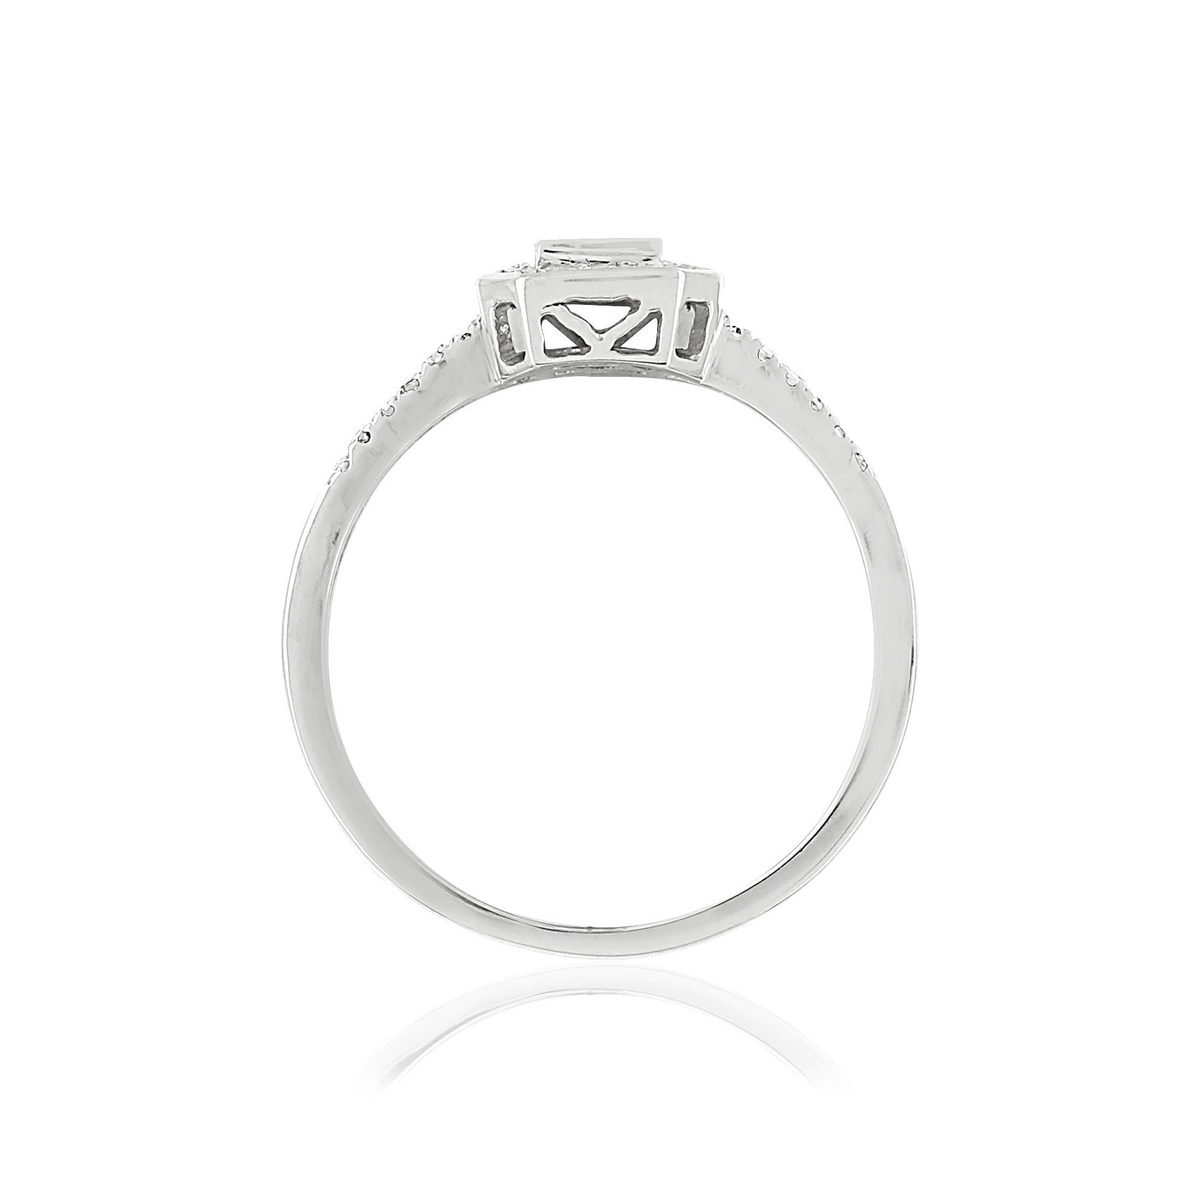 Bague MATY Or 750 blanc Diamants - vue 2